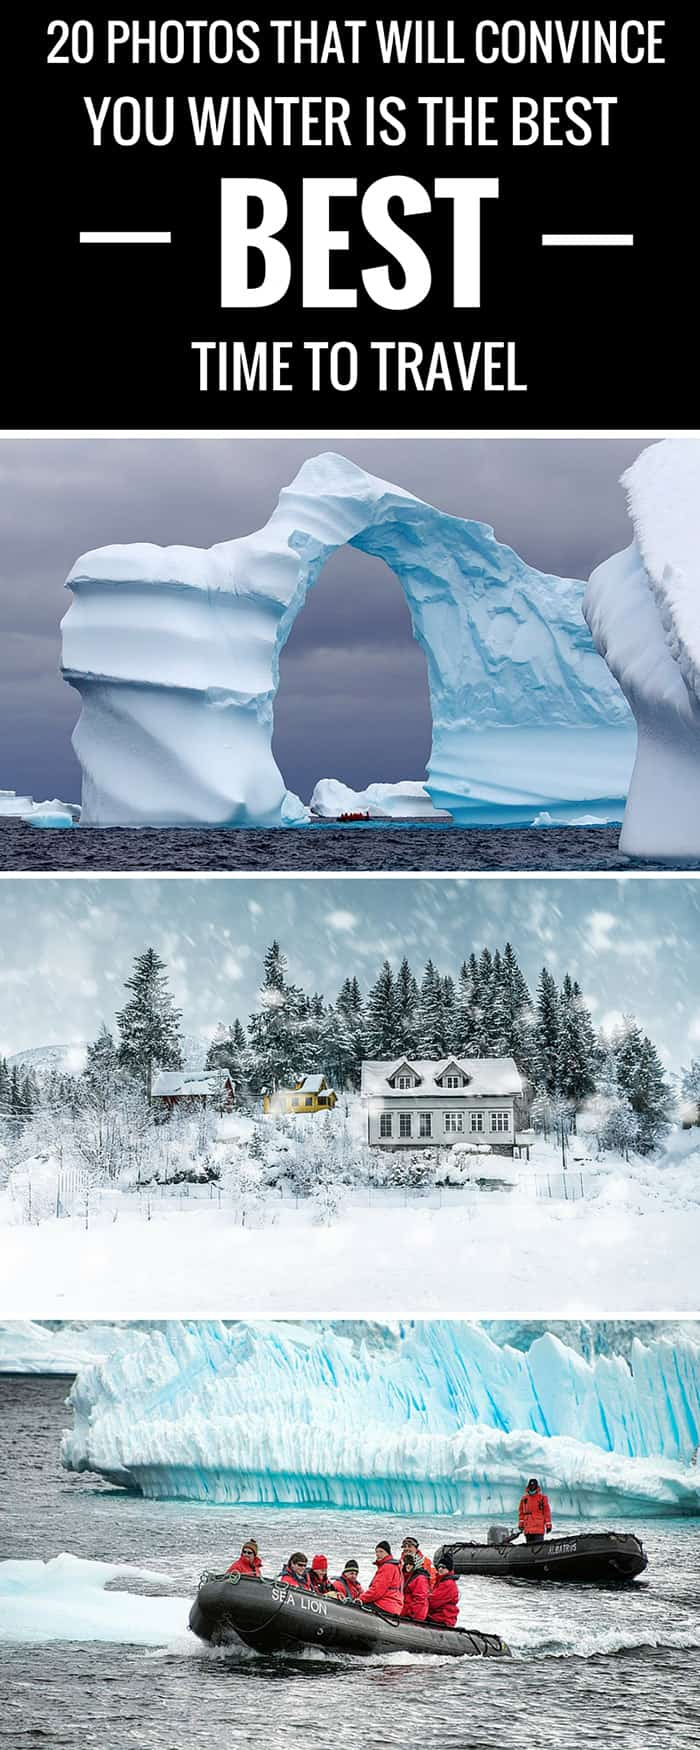 20 Photos That Will Convince You Winter is the BEST Time To Travel!